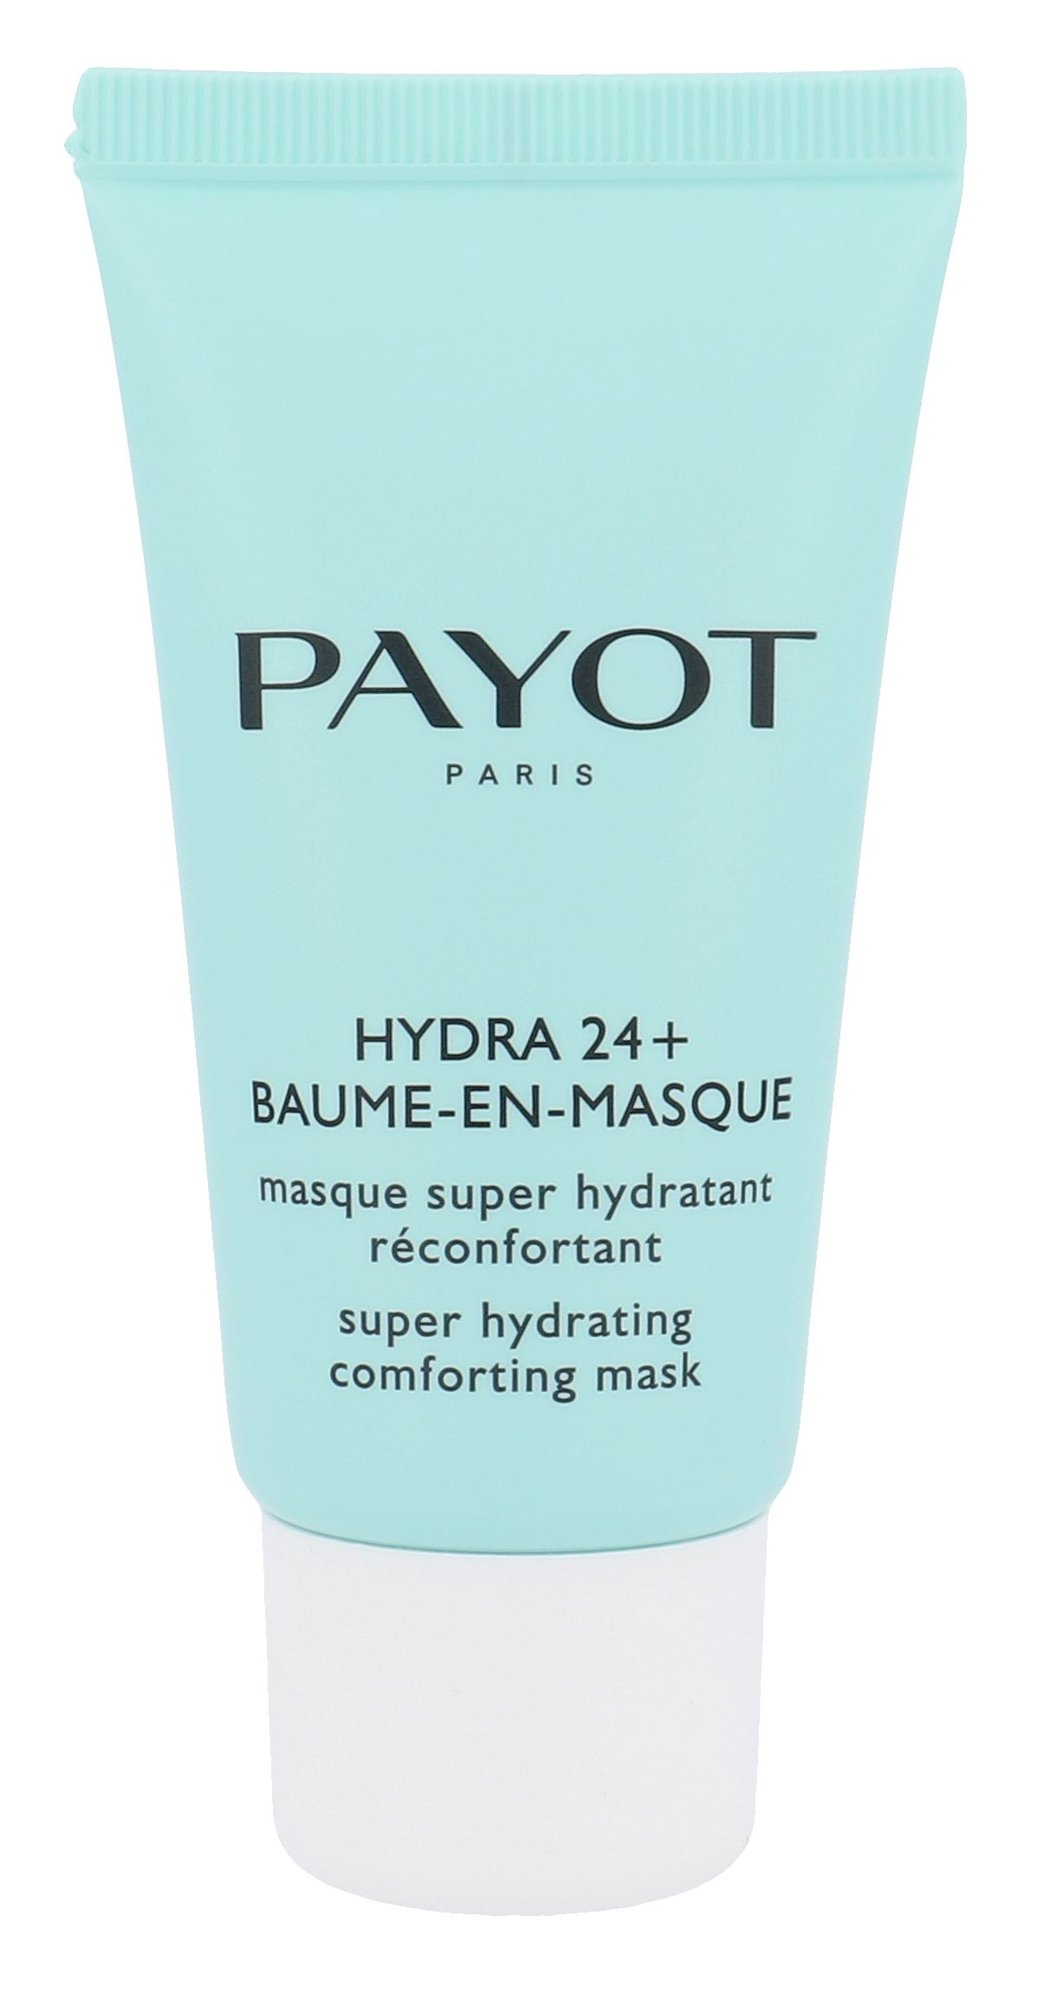 Payot Hydra 24+ Hydrating Comforting Mask Cosmetic 50ml